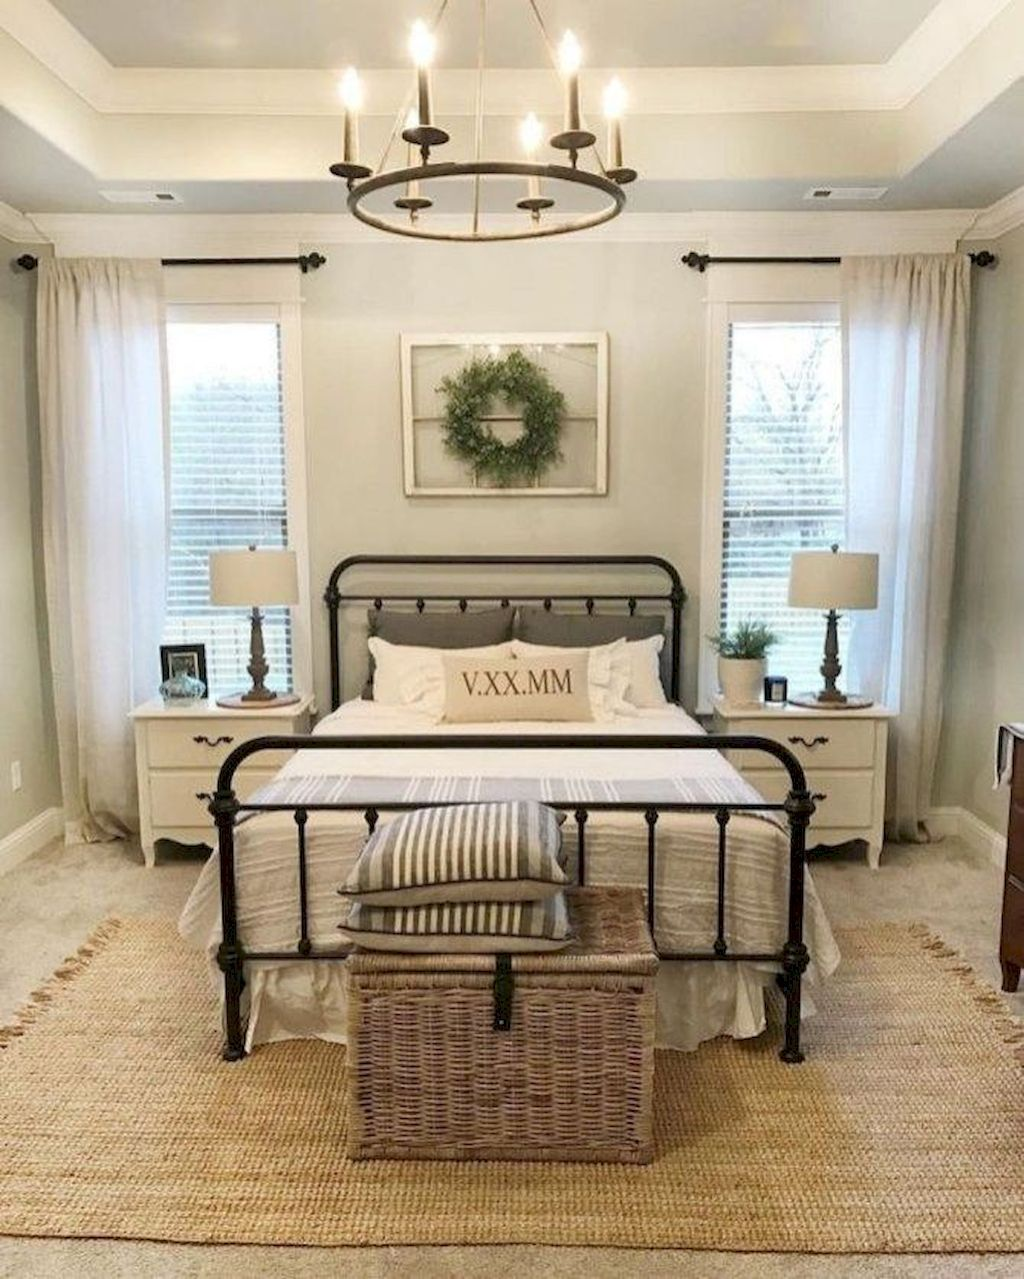 Romantic master bedroom decor  AWESOME FARMHOUSE RUSTIC MASTER BEDROOM IDEAS  in   Home